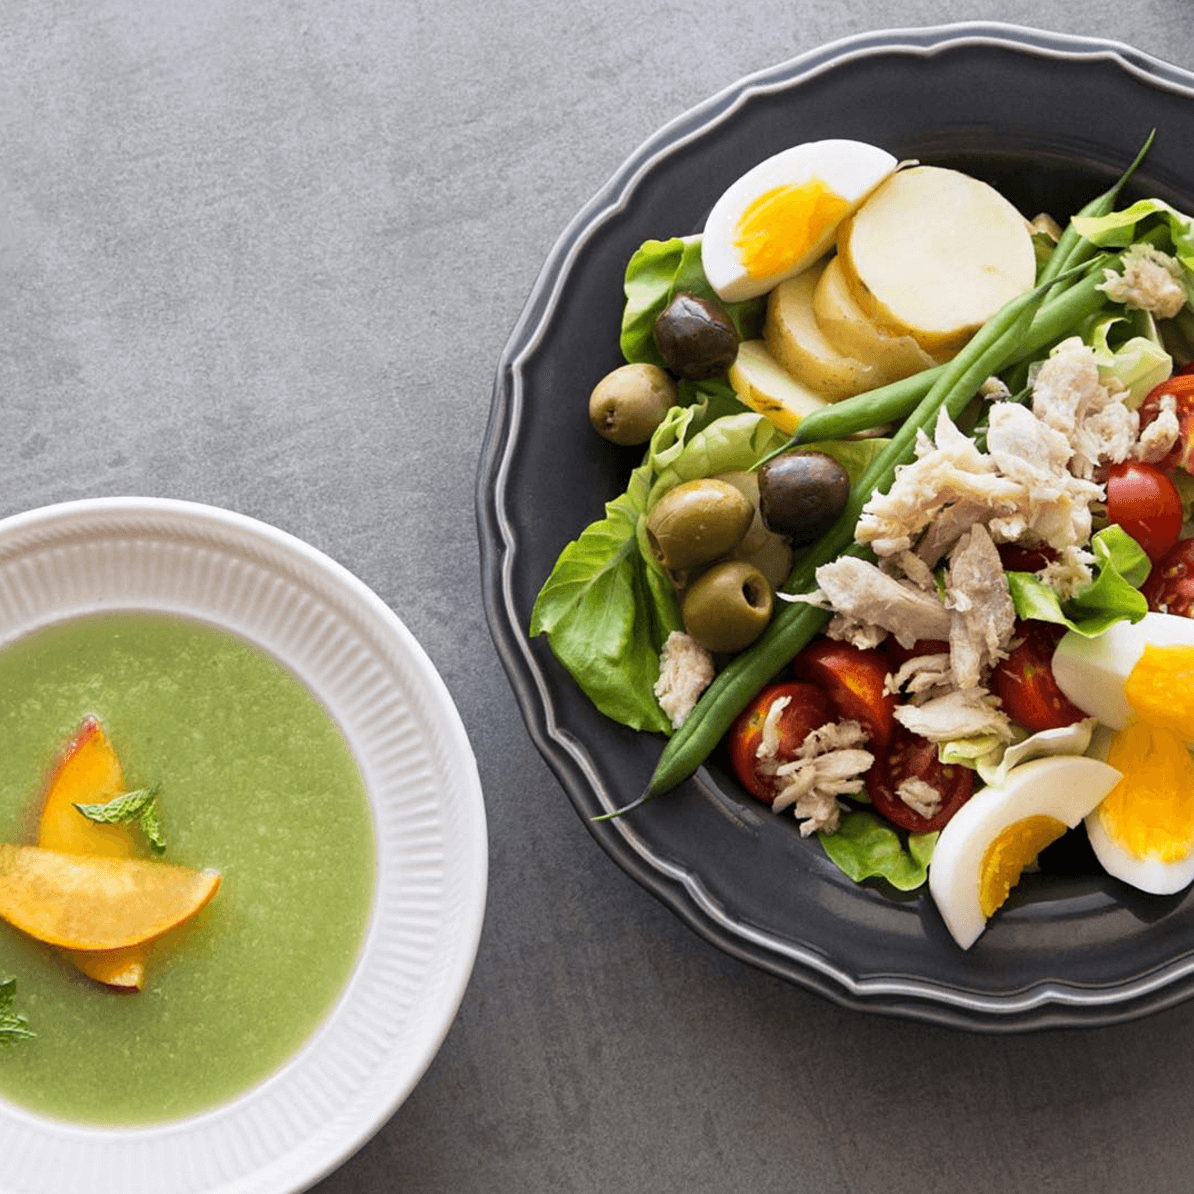 Shop Specialties Munchery Home Food Delivery Salad